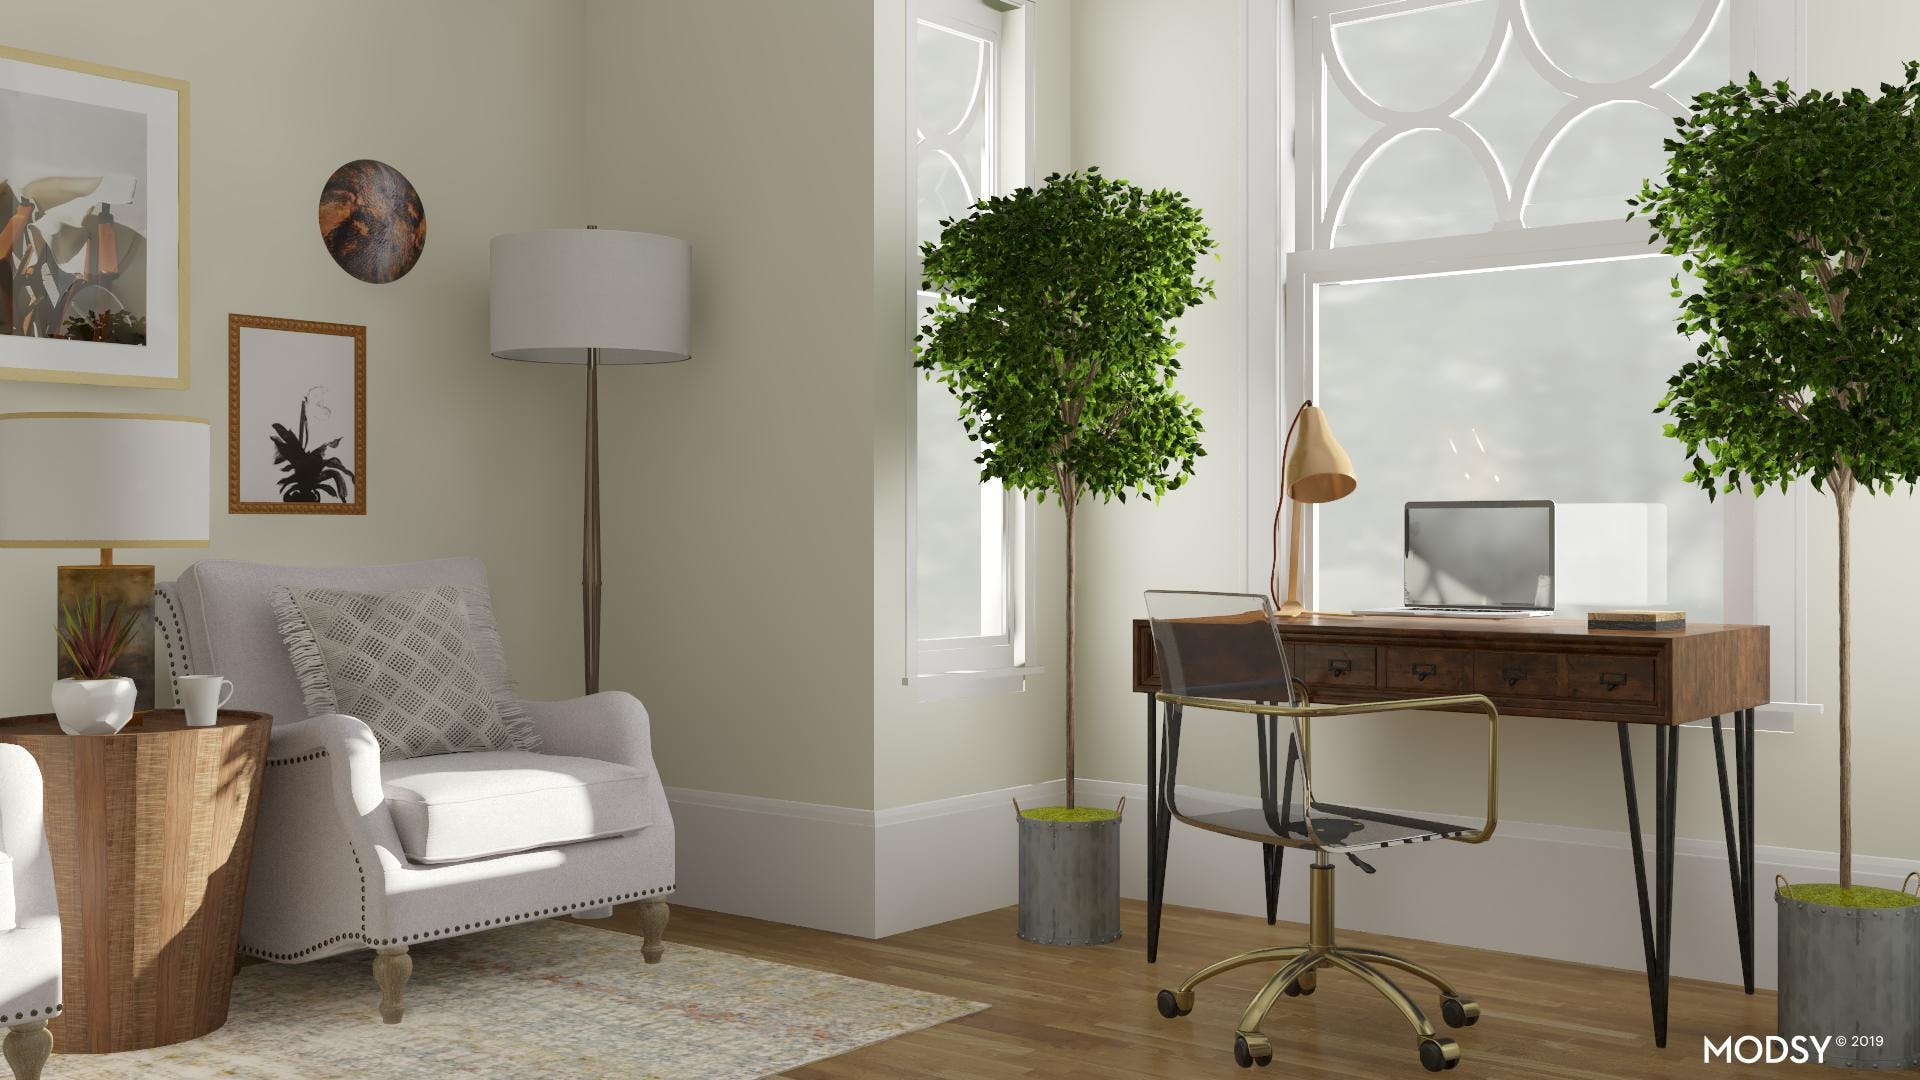 Eclectic Mix: Traditional & Modern